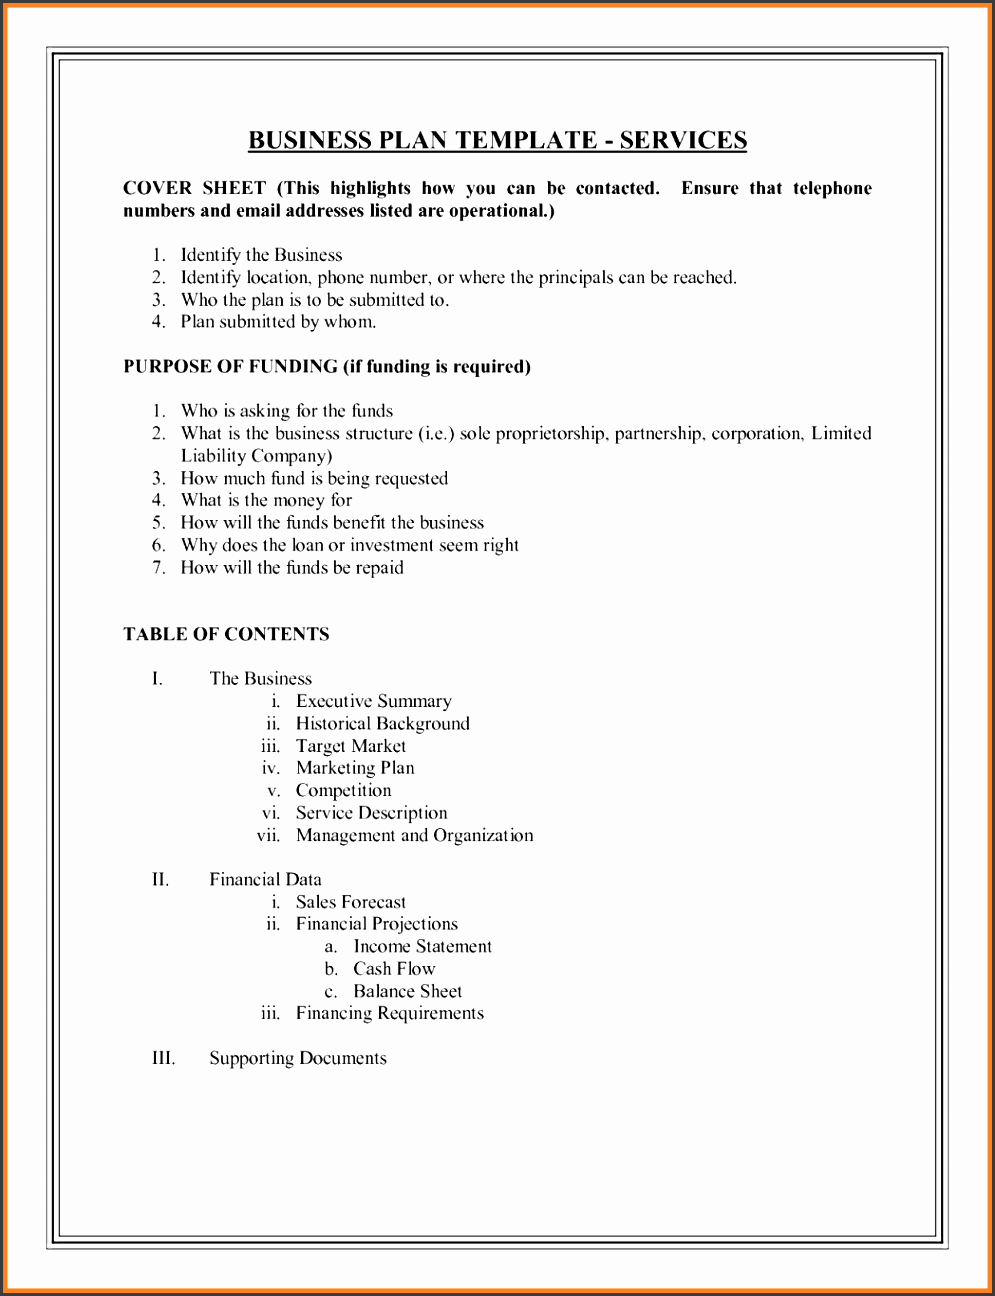 Table Of Contents Template Online SampleTemplatess - Magazine business plan template